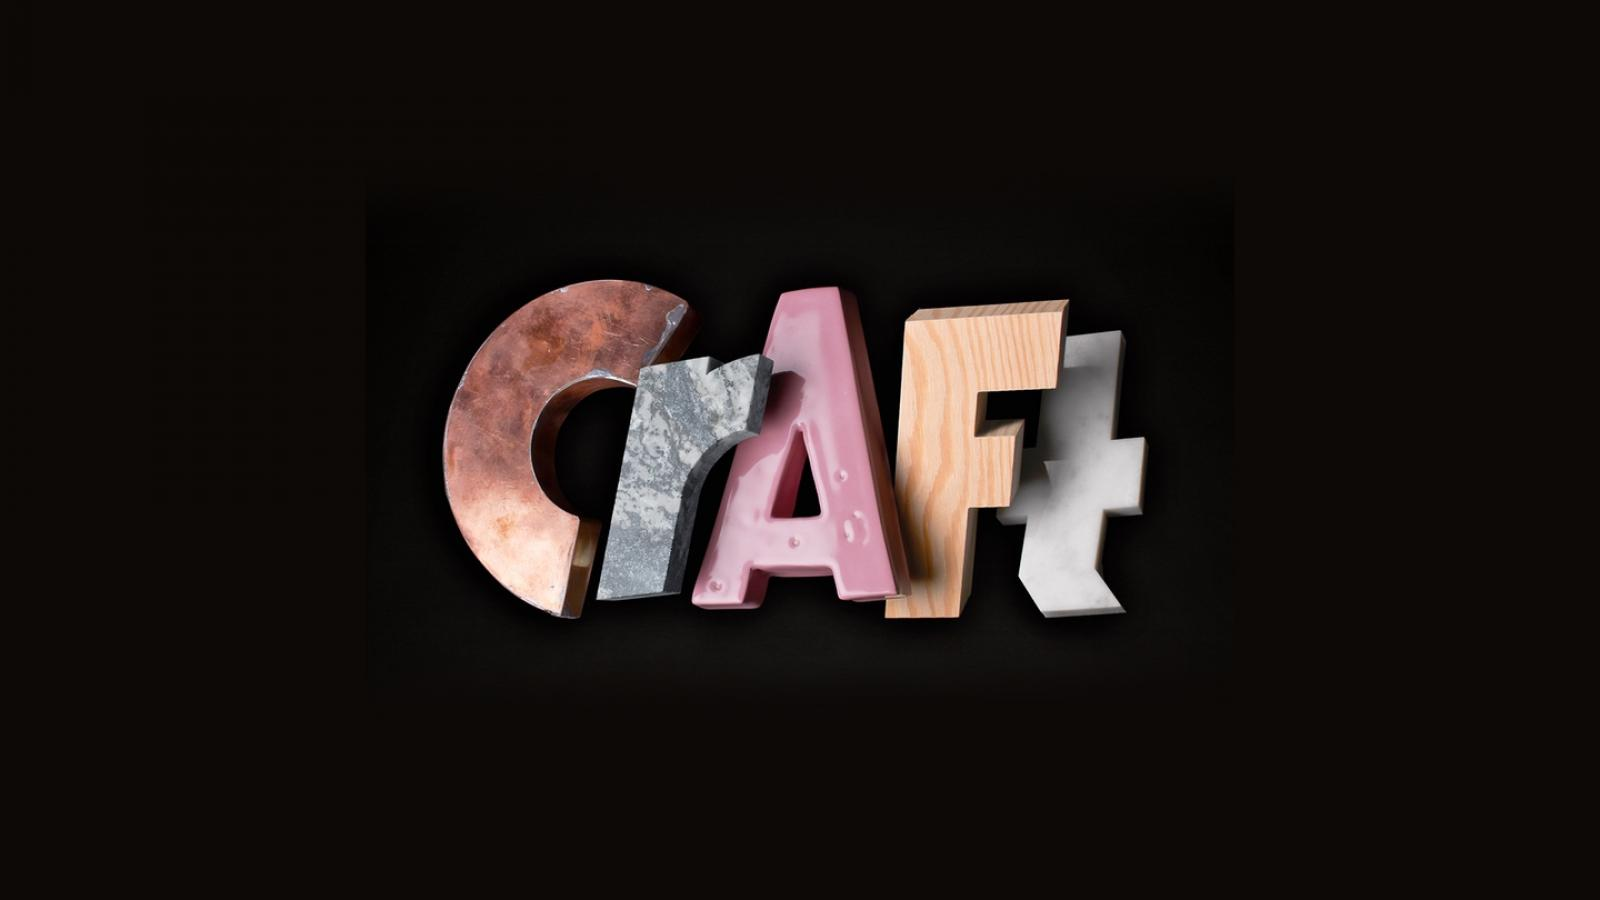 Attention: Craft - Identity